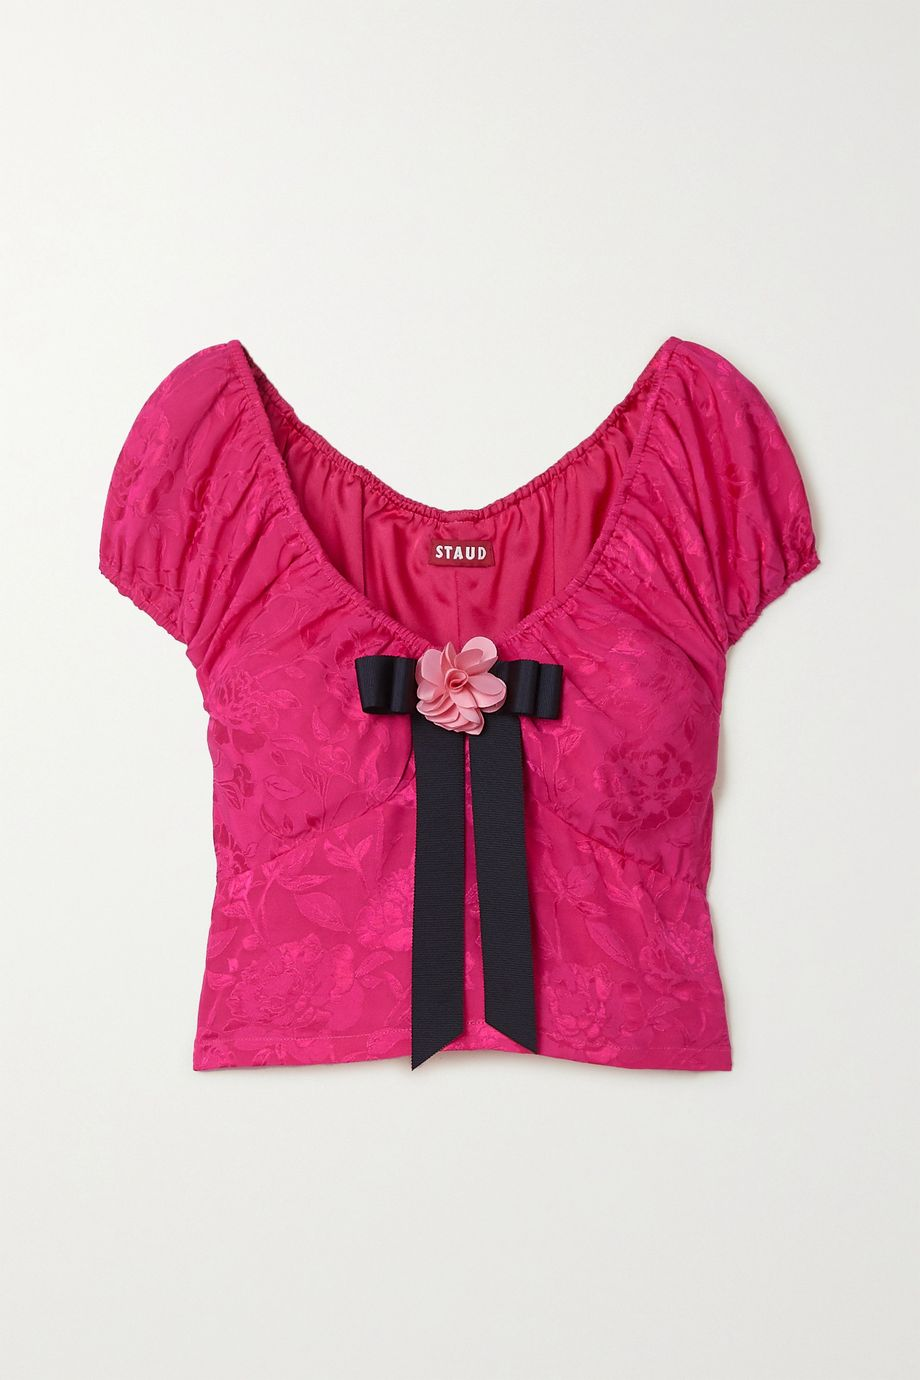 STAUD Hydrangea bow-embellished floral-jacquard top